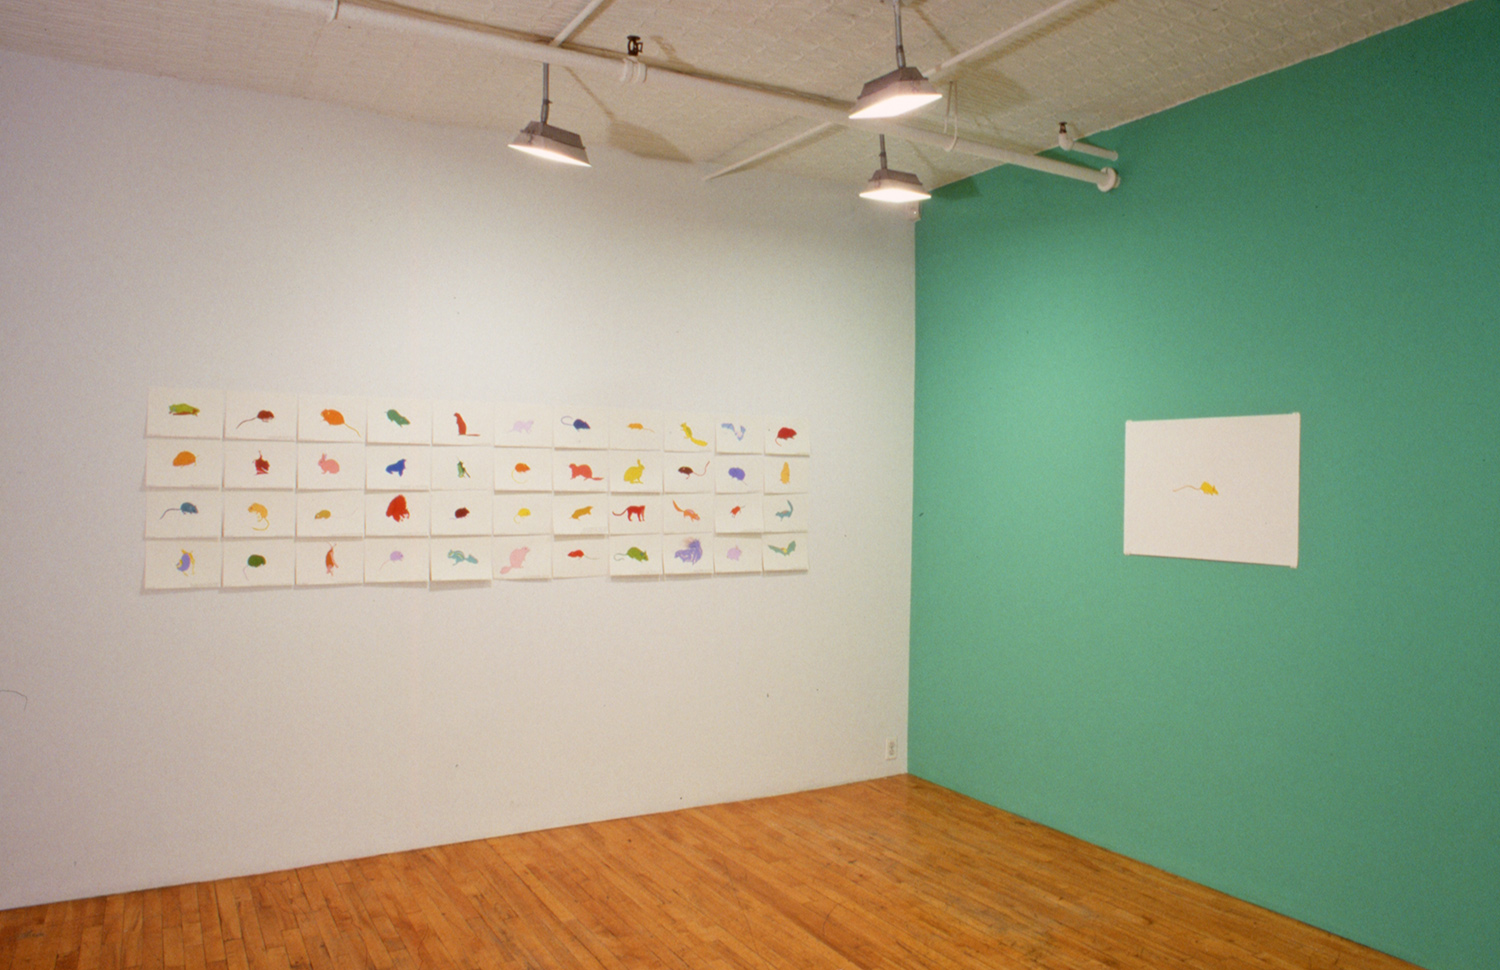 Installation, Debs and Co., New York